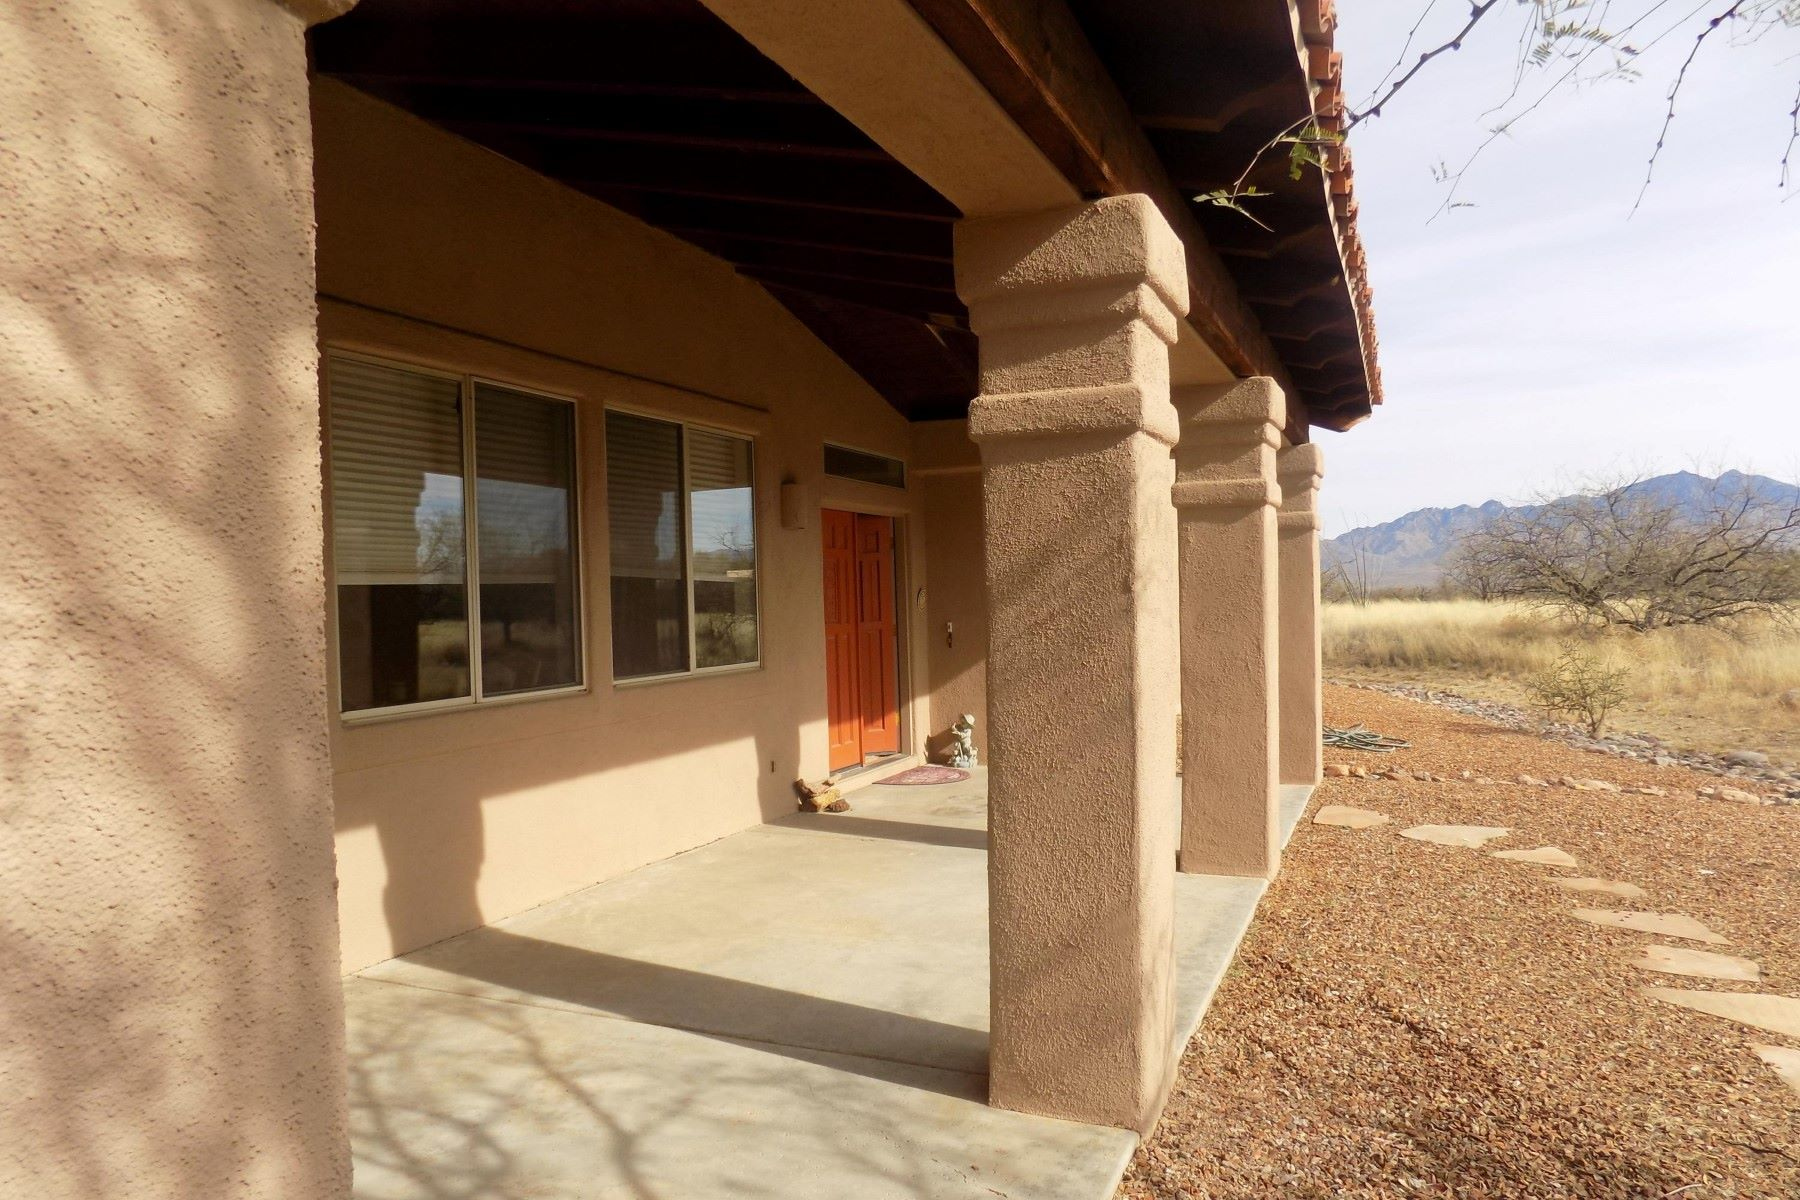 Single Family Home for Sale at Well Located Home in Empty Saddles Estates 2263 Rusty Spur Rd, Tubac, Arizona, 85646 United States